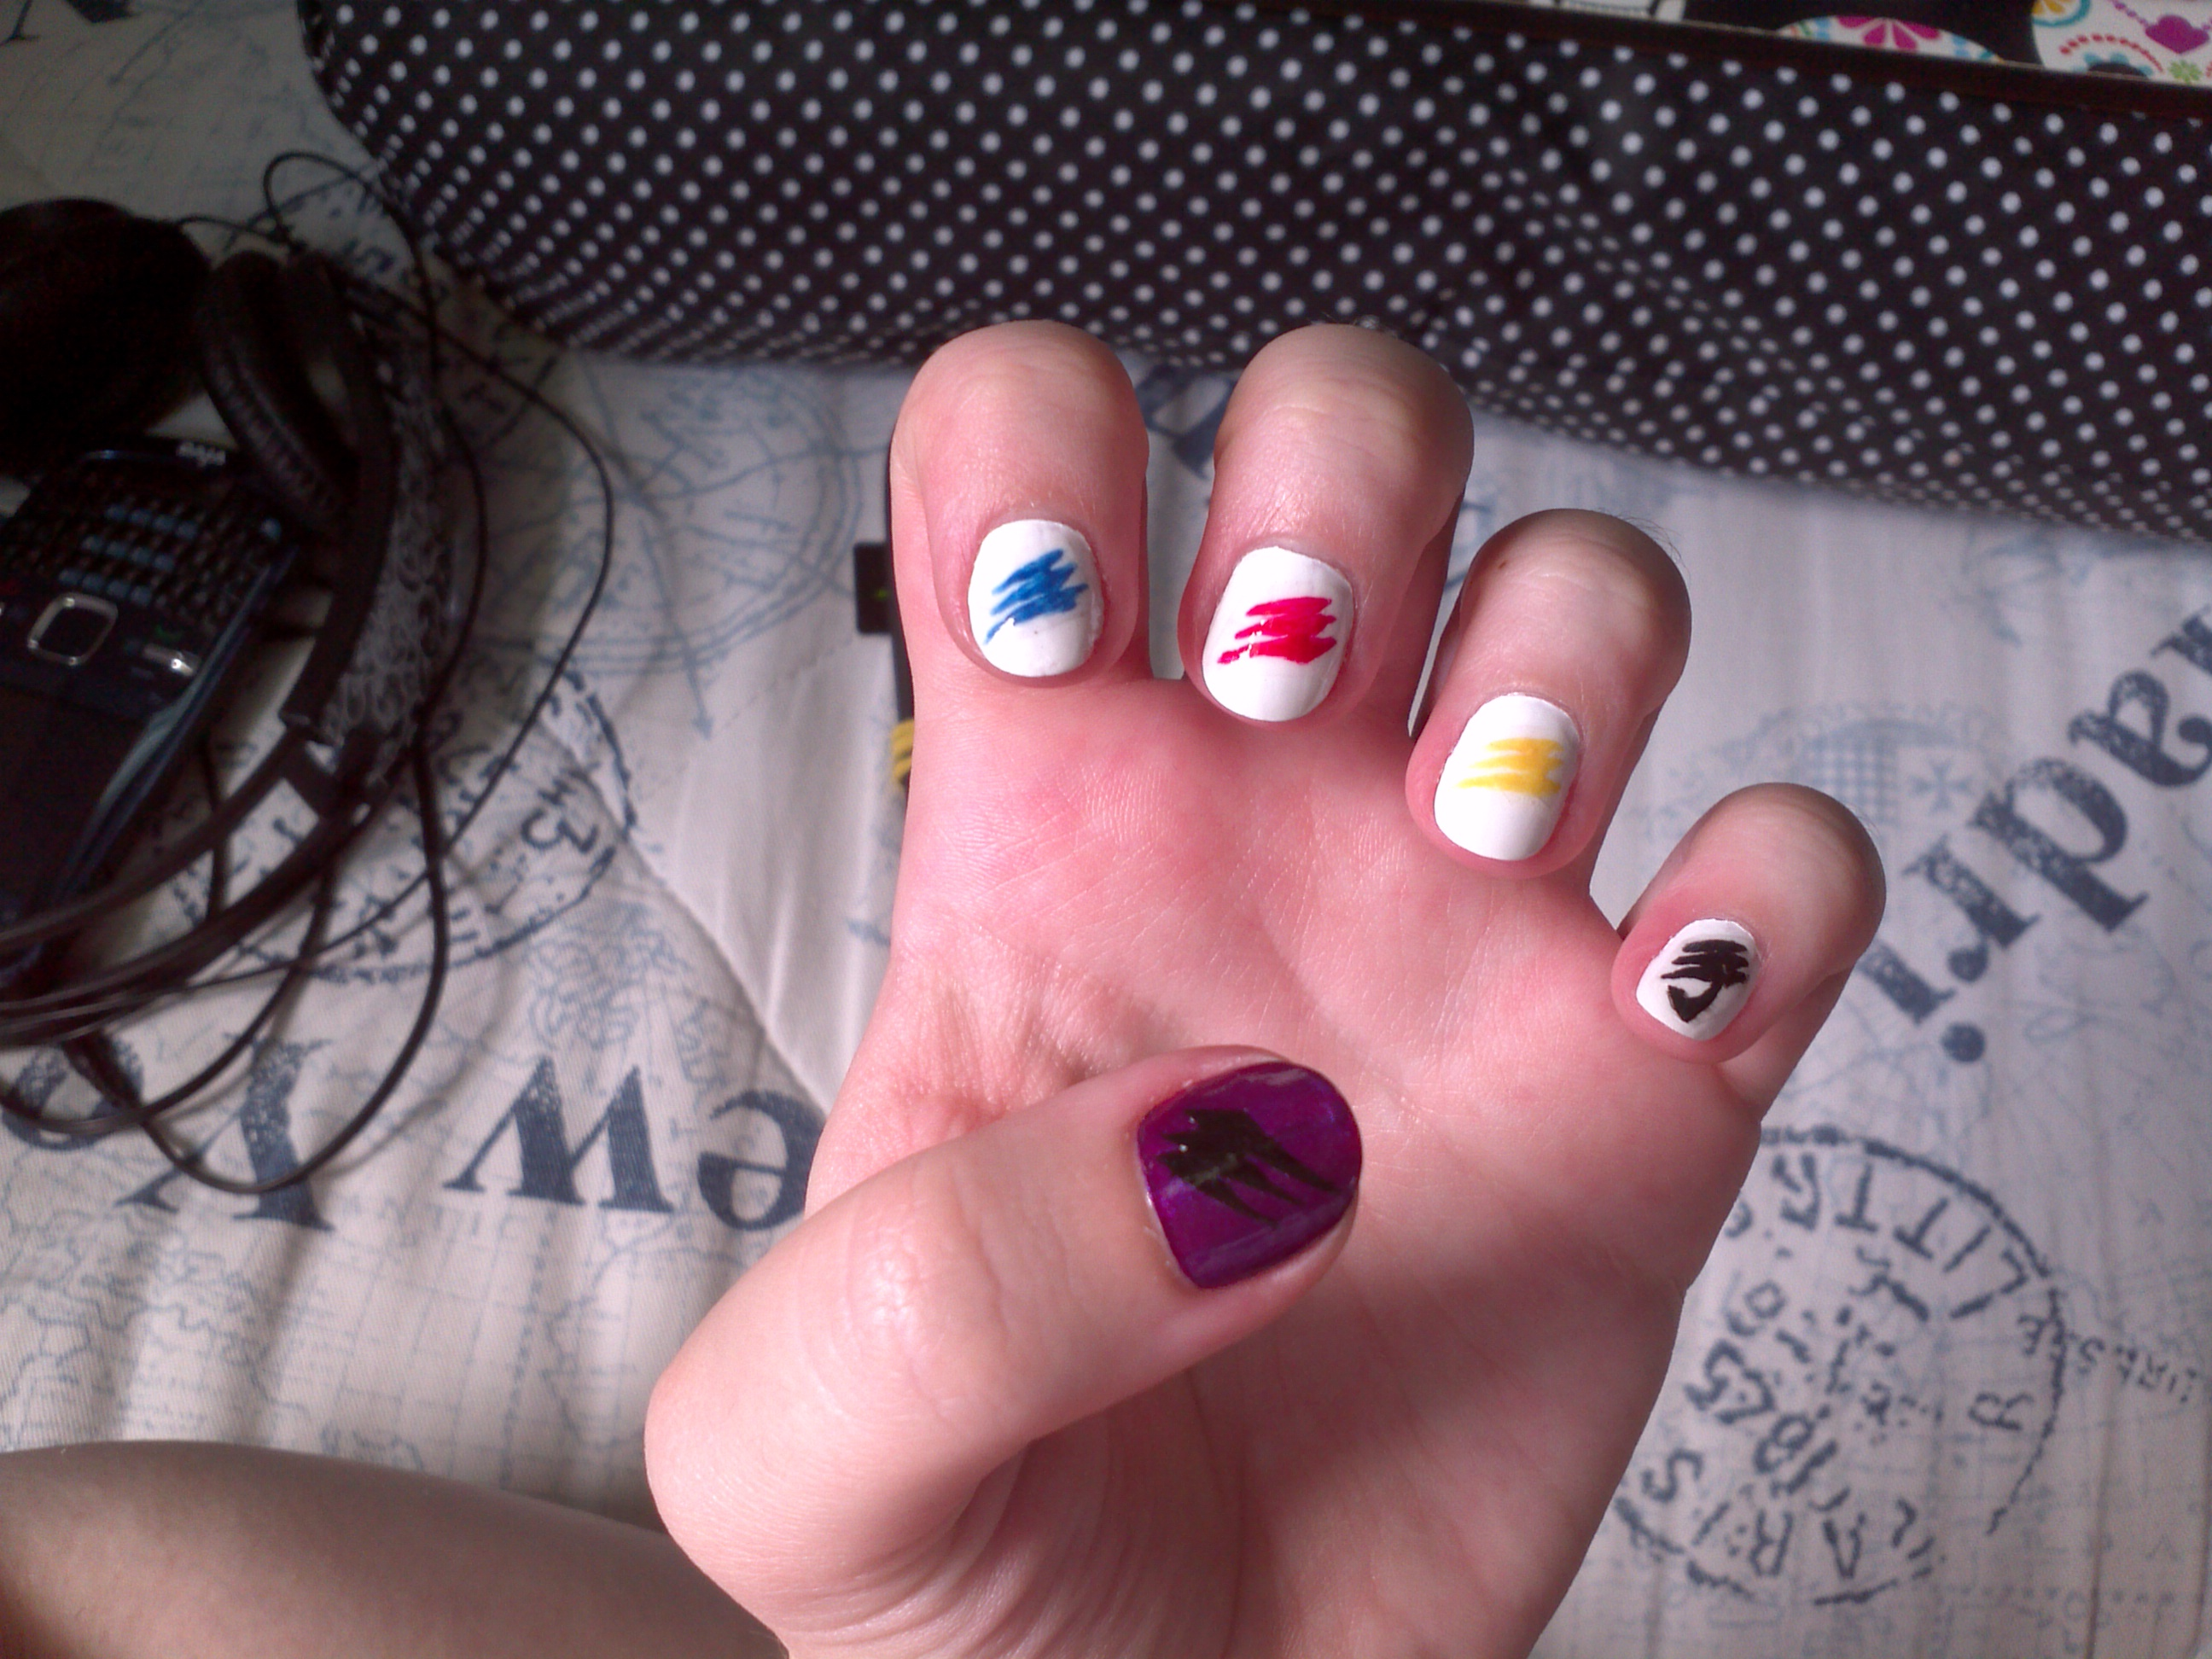 Nail designs top 10 easy pretty designs for short and long nails idea 3 random lines prinsesfo Choice Image